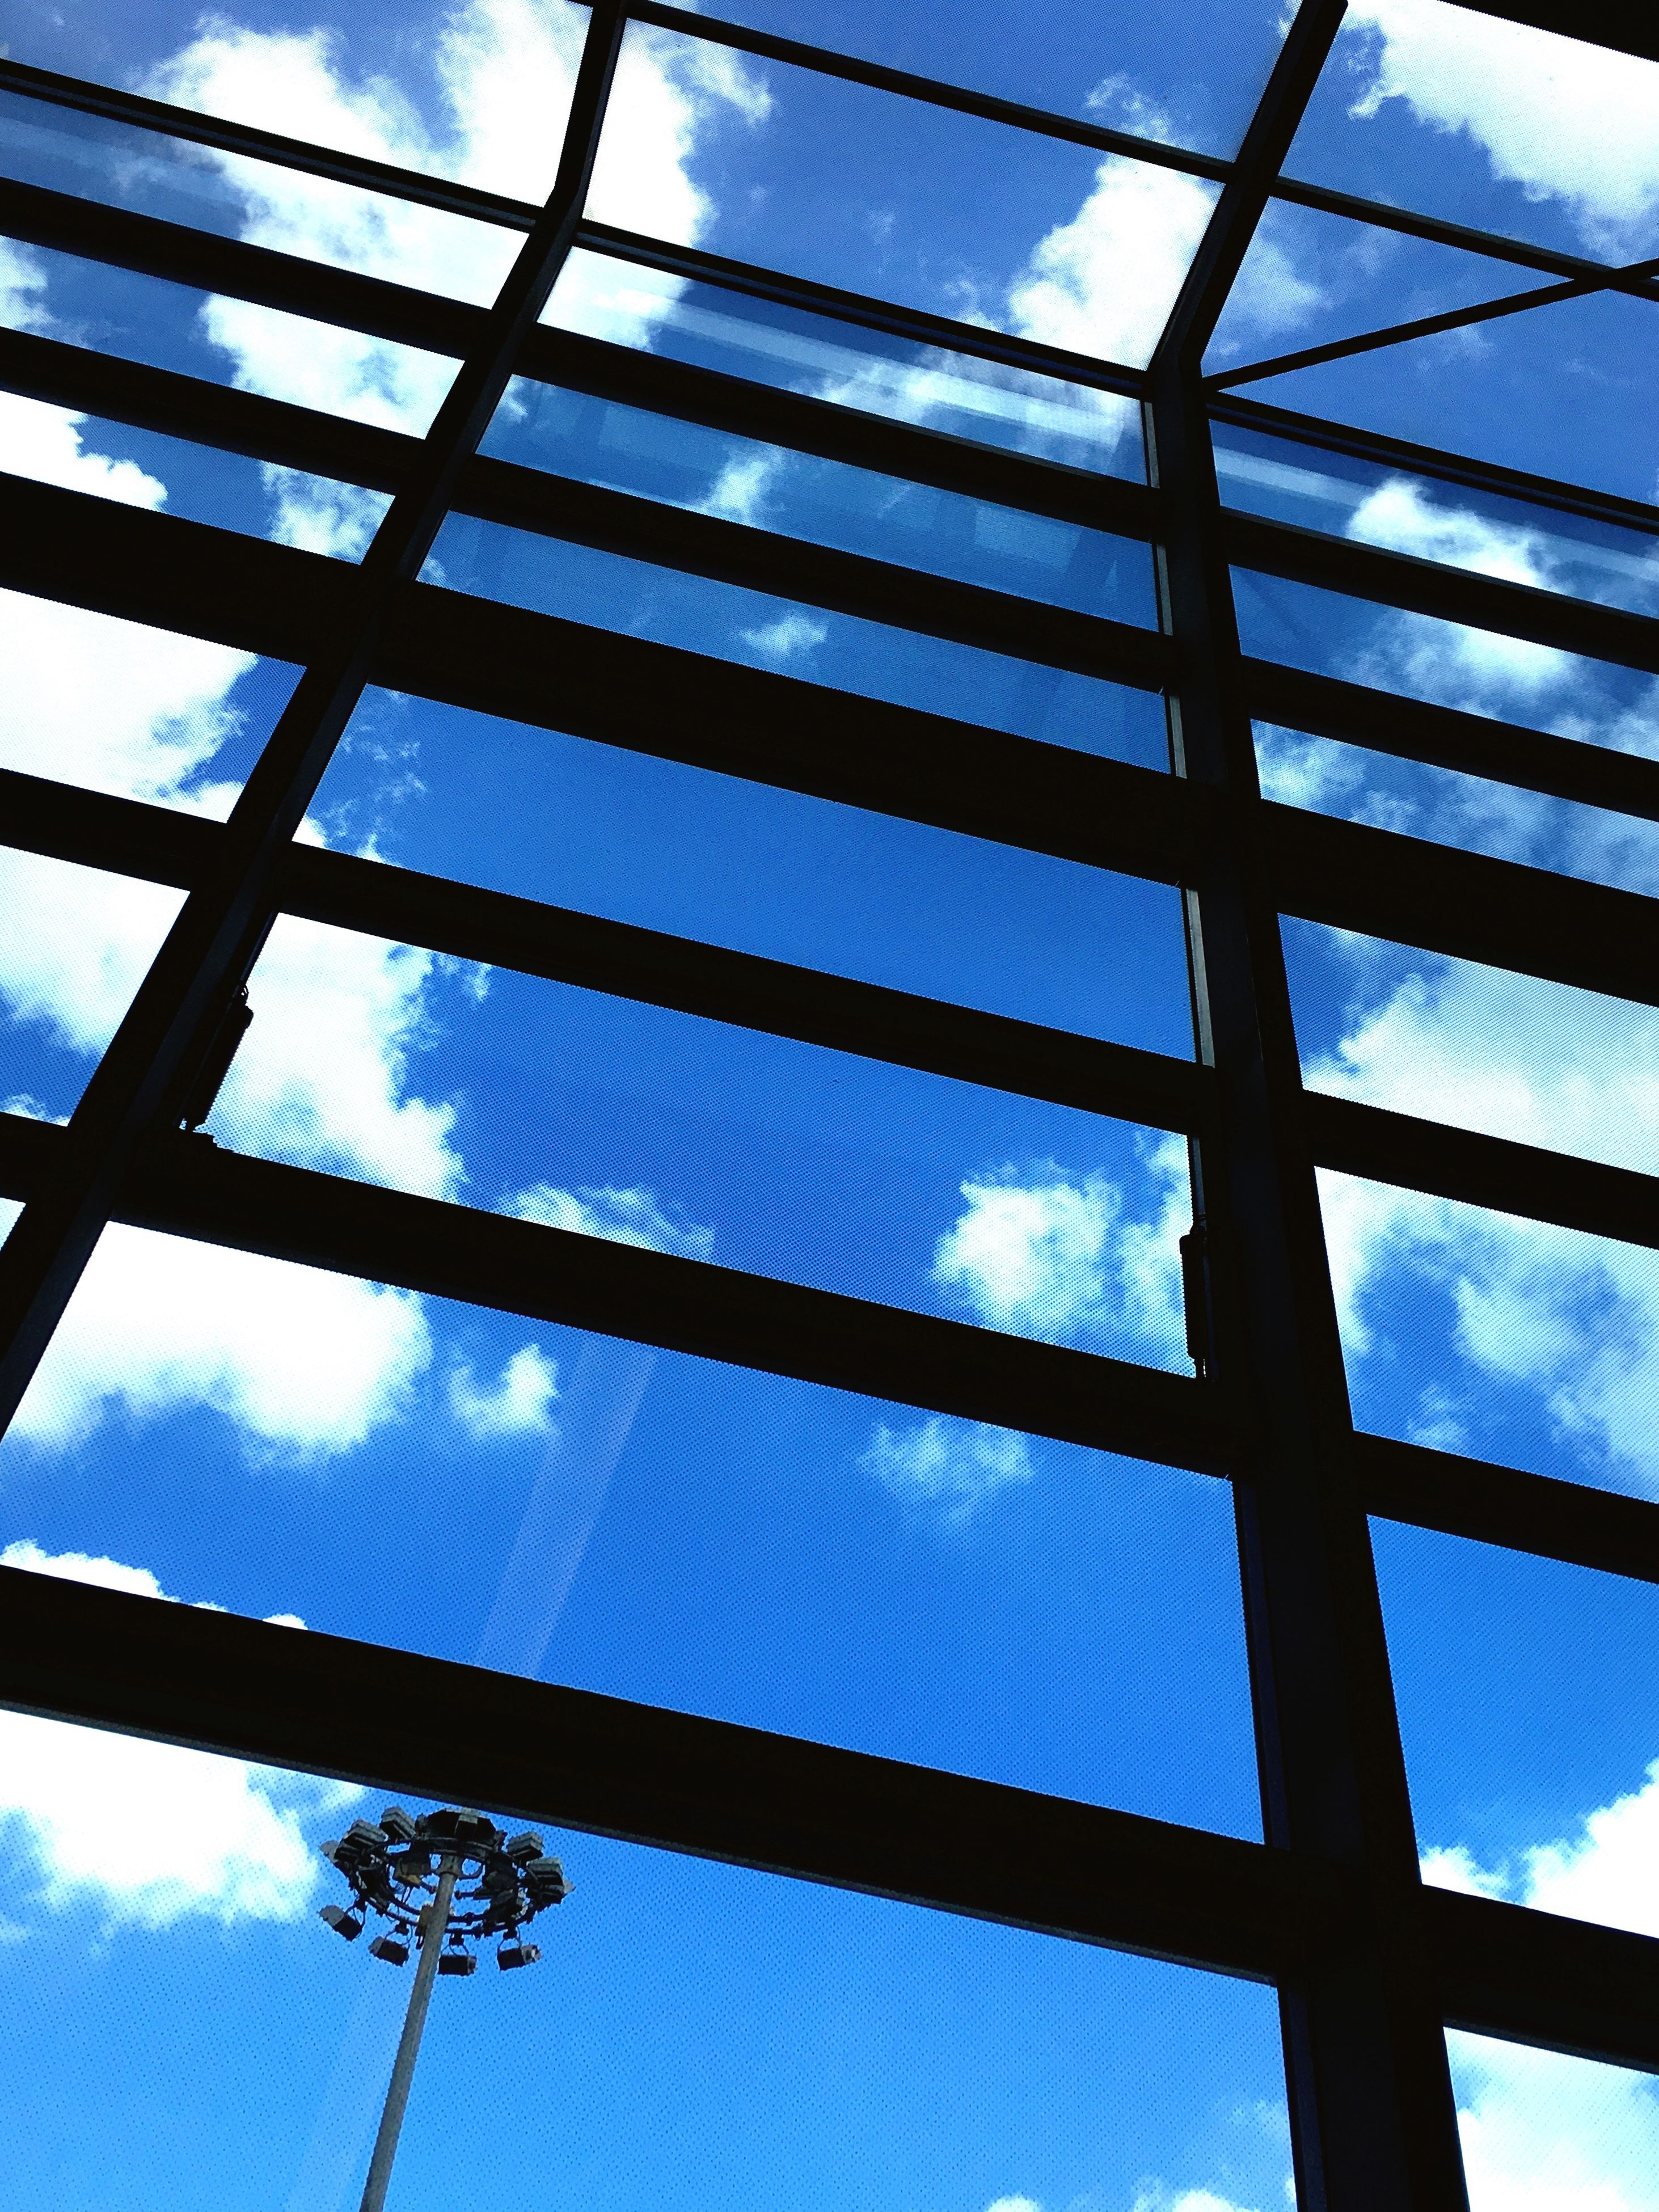 low angle view, full frame, backgrounds, blue, sky, cloud, day, office building, outdoors, repetition, modern, iron - metal, tall - high, power line, cloud - sky